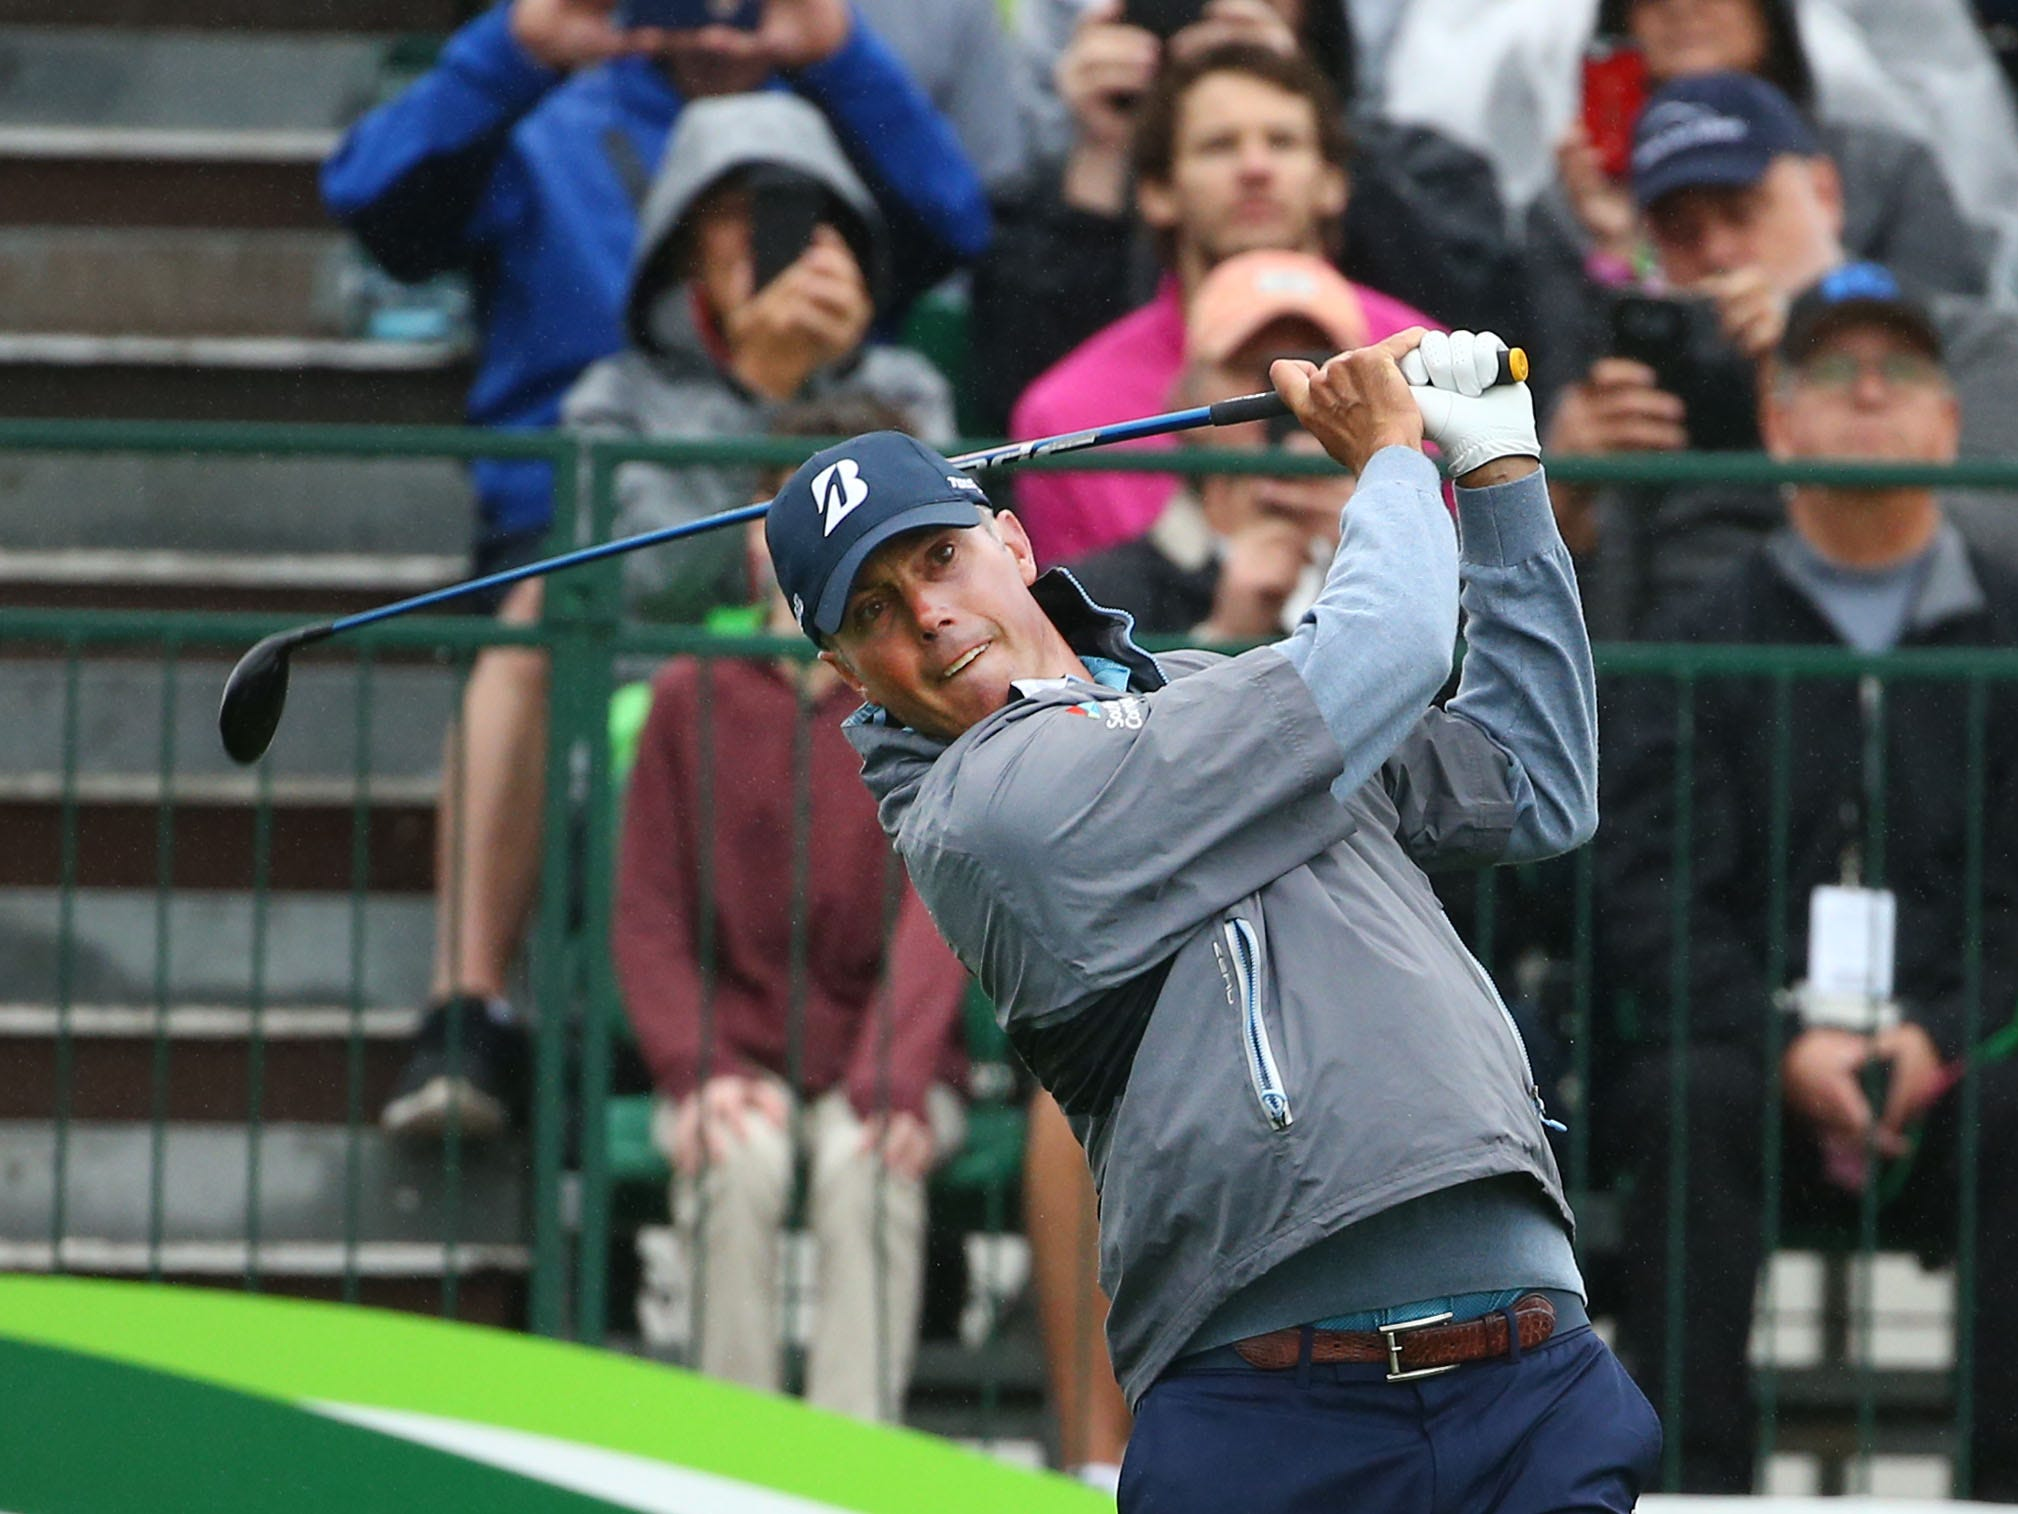 Matt Kuchar hits his tee shot on the first hole during final round action on Feb. 3 during the Waste Management Phoenix Open at the TPC Scottsdale Stadium Course.